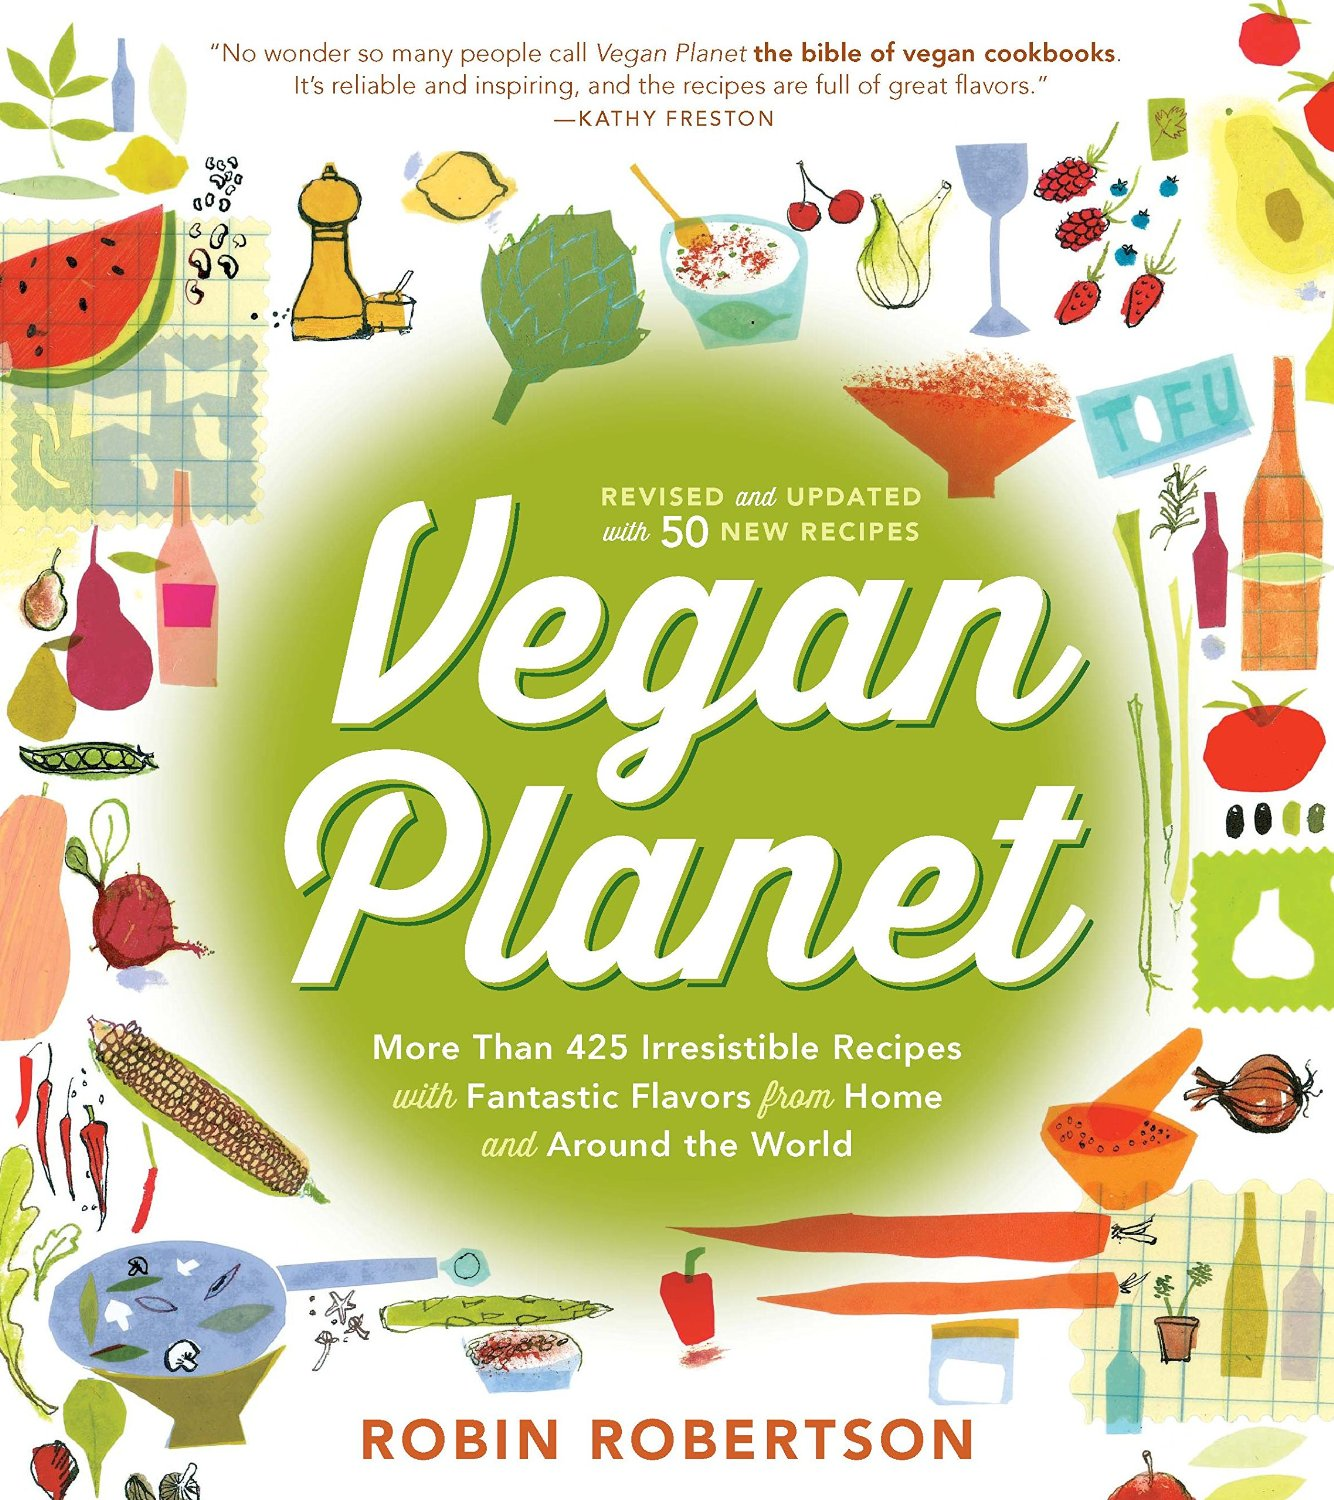 Vegan Planet, Revised Edition: 425 Irresistible Recipes With Fantastic Flavors from Home and Around the World free download